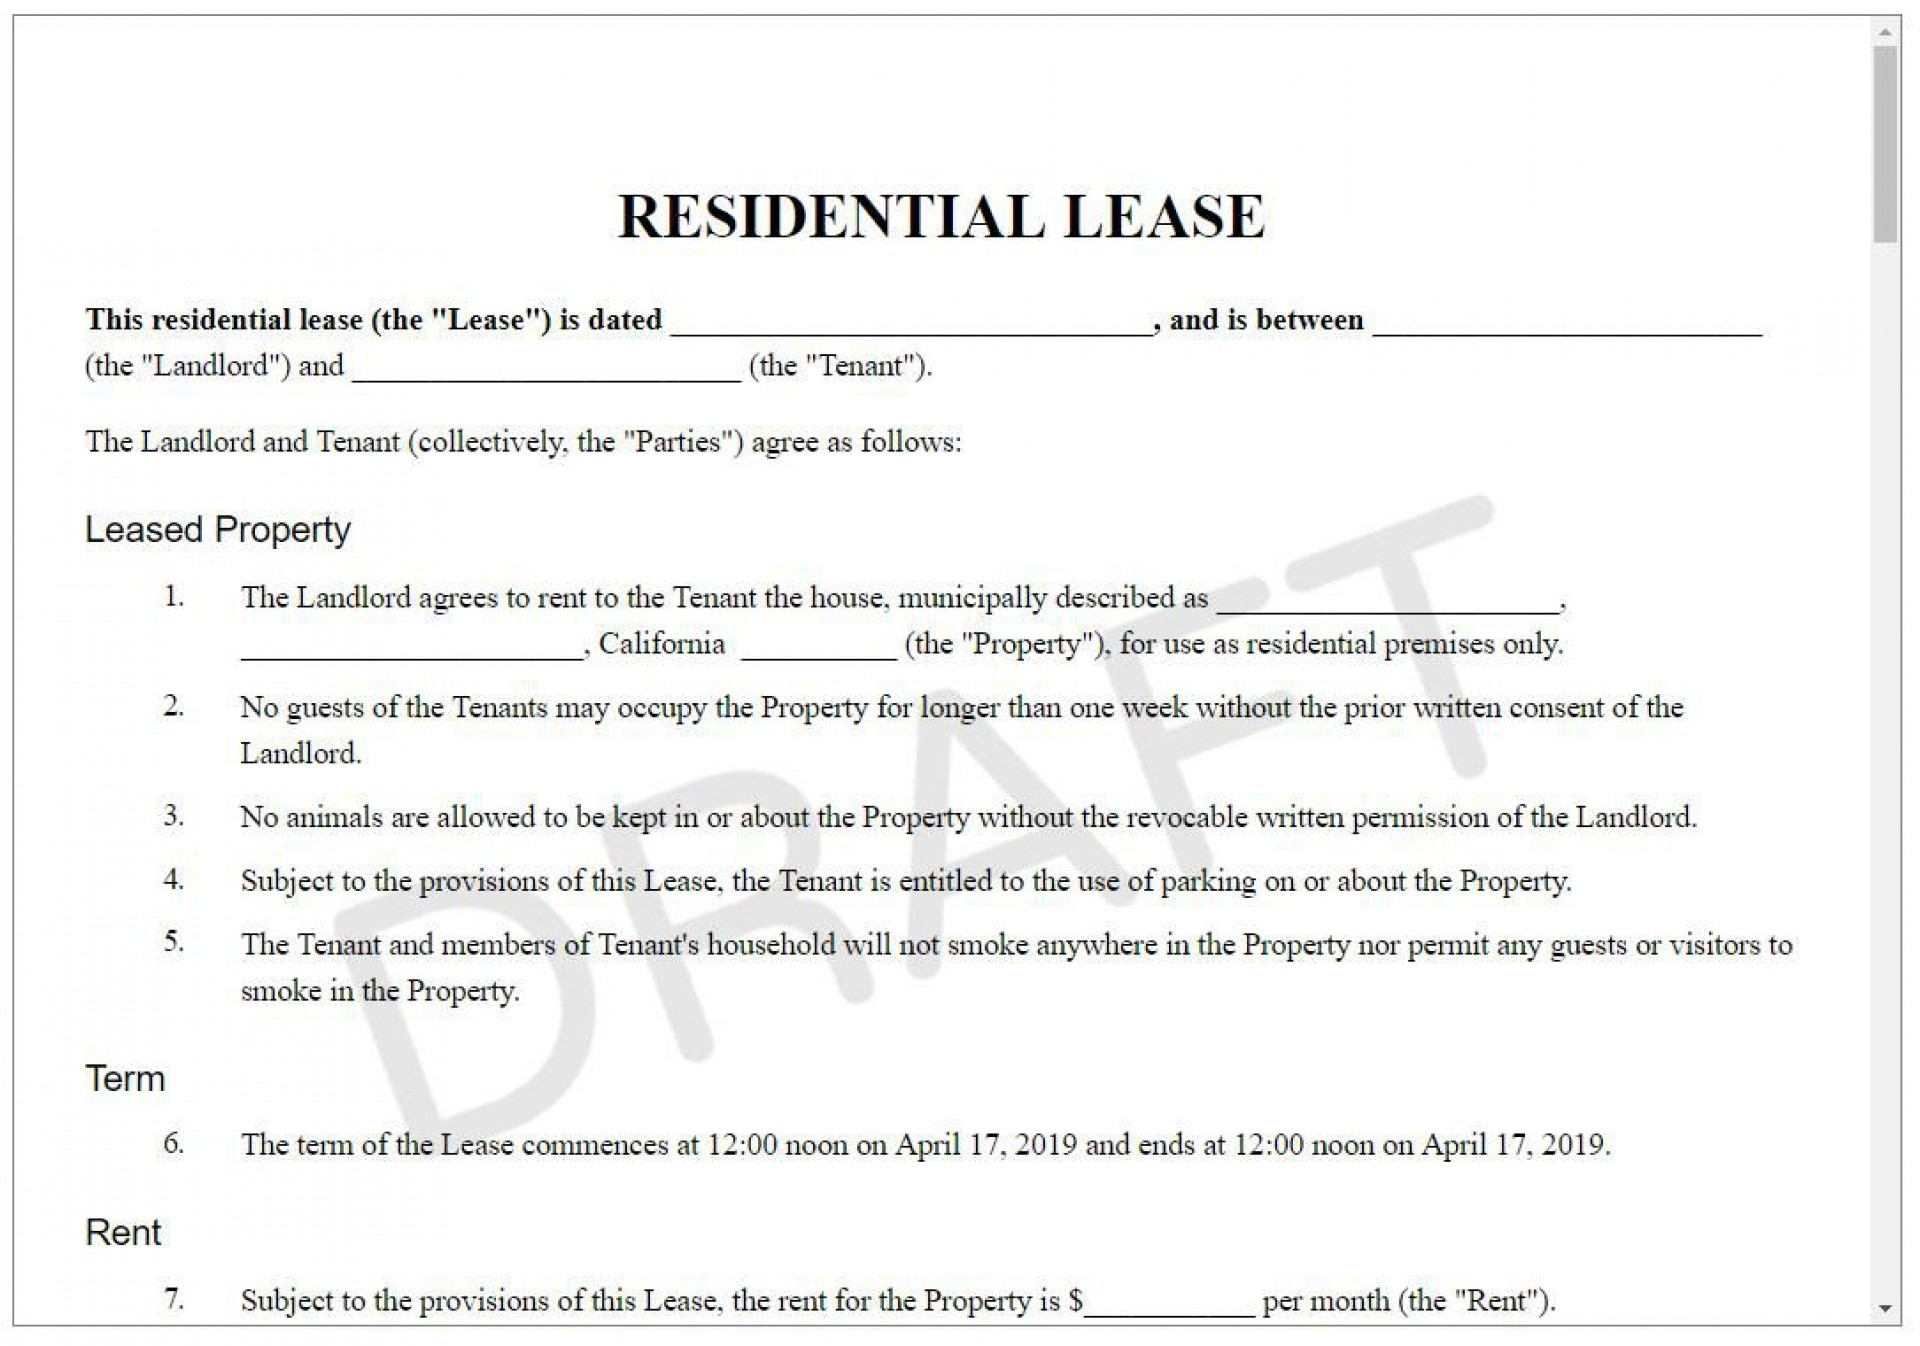 008 Fantastic Renting Contract Template Free High Definition  Flat Rental Simple1920